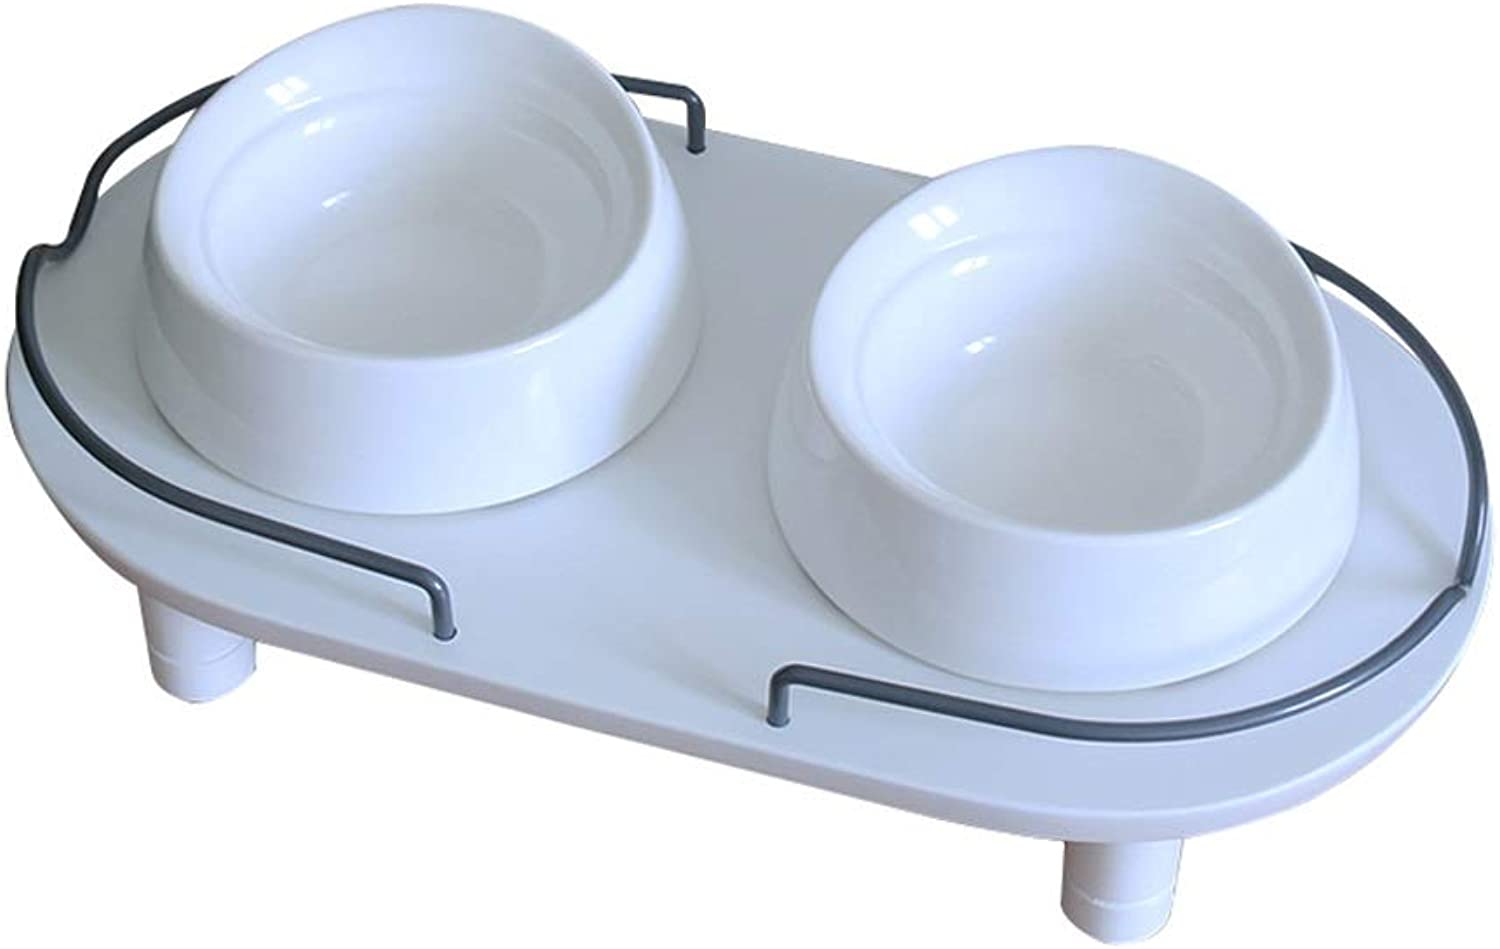 Cat Dog Bowls, Pet Dining Table, Cat Food Bowl Cat Feeding Bowl Cat Water Bowl, Double Bowl Feeder, for Cats Puppies (color   B)